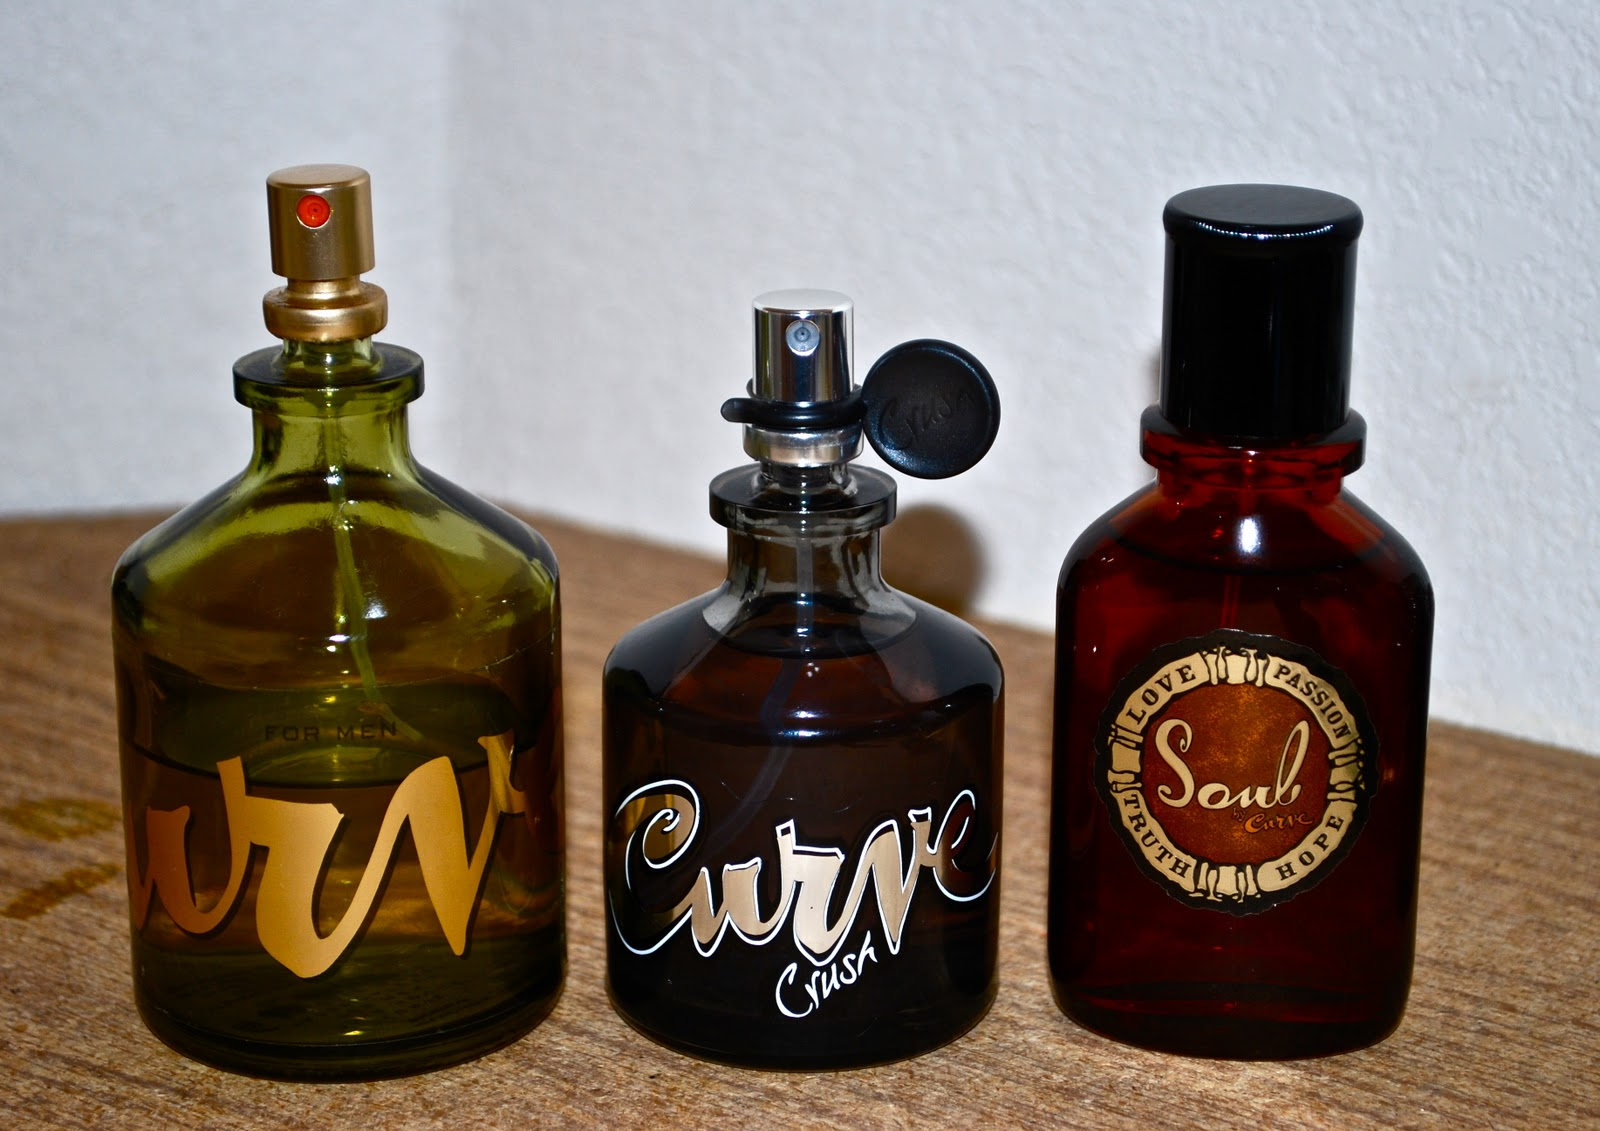 Thierry Mugler Amen And Its Flankers Descent Into Madness Axe Chocolate Dark Temptation Fragrance Oil 120ml Of The Hollister Jake Bottle Only Curve Ive Seen That Actually Has A Cap Instead Spray Stopper Soul Logo Is Sticker As With